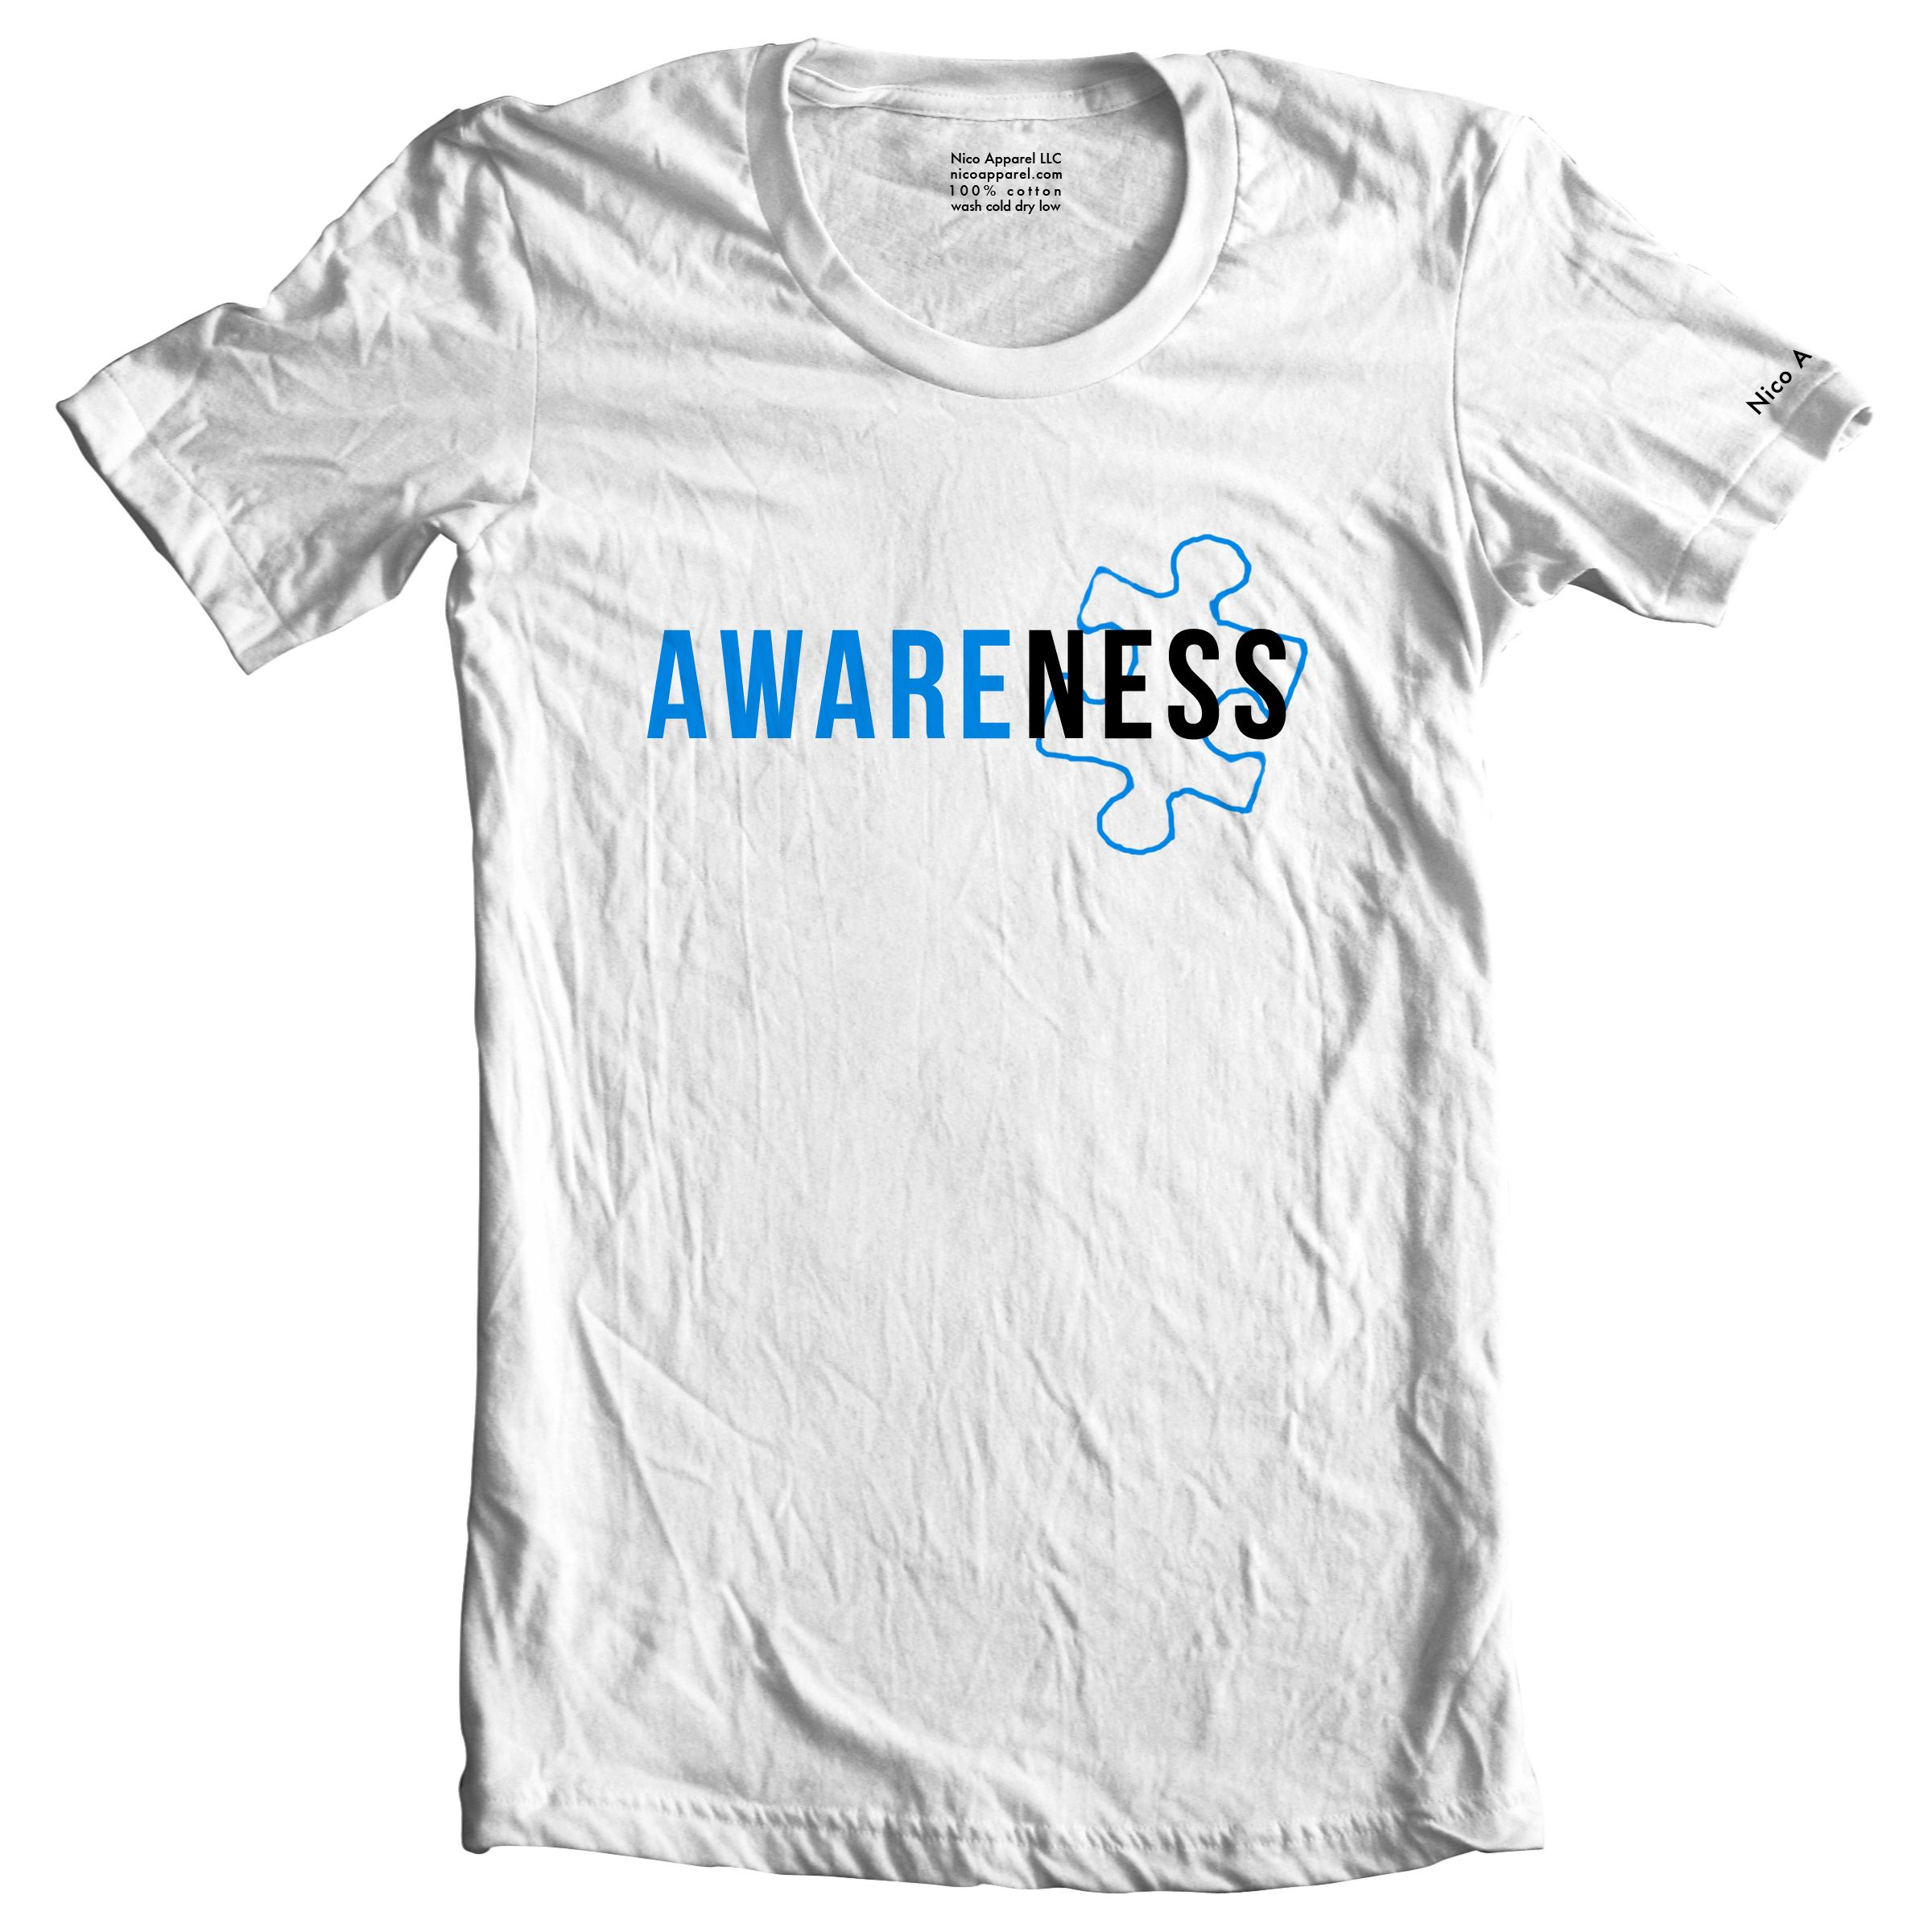 $5 from each shirt sold goes to the National Autism Association.